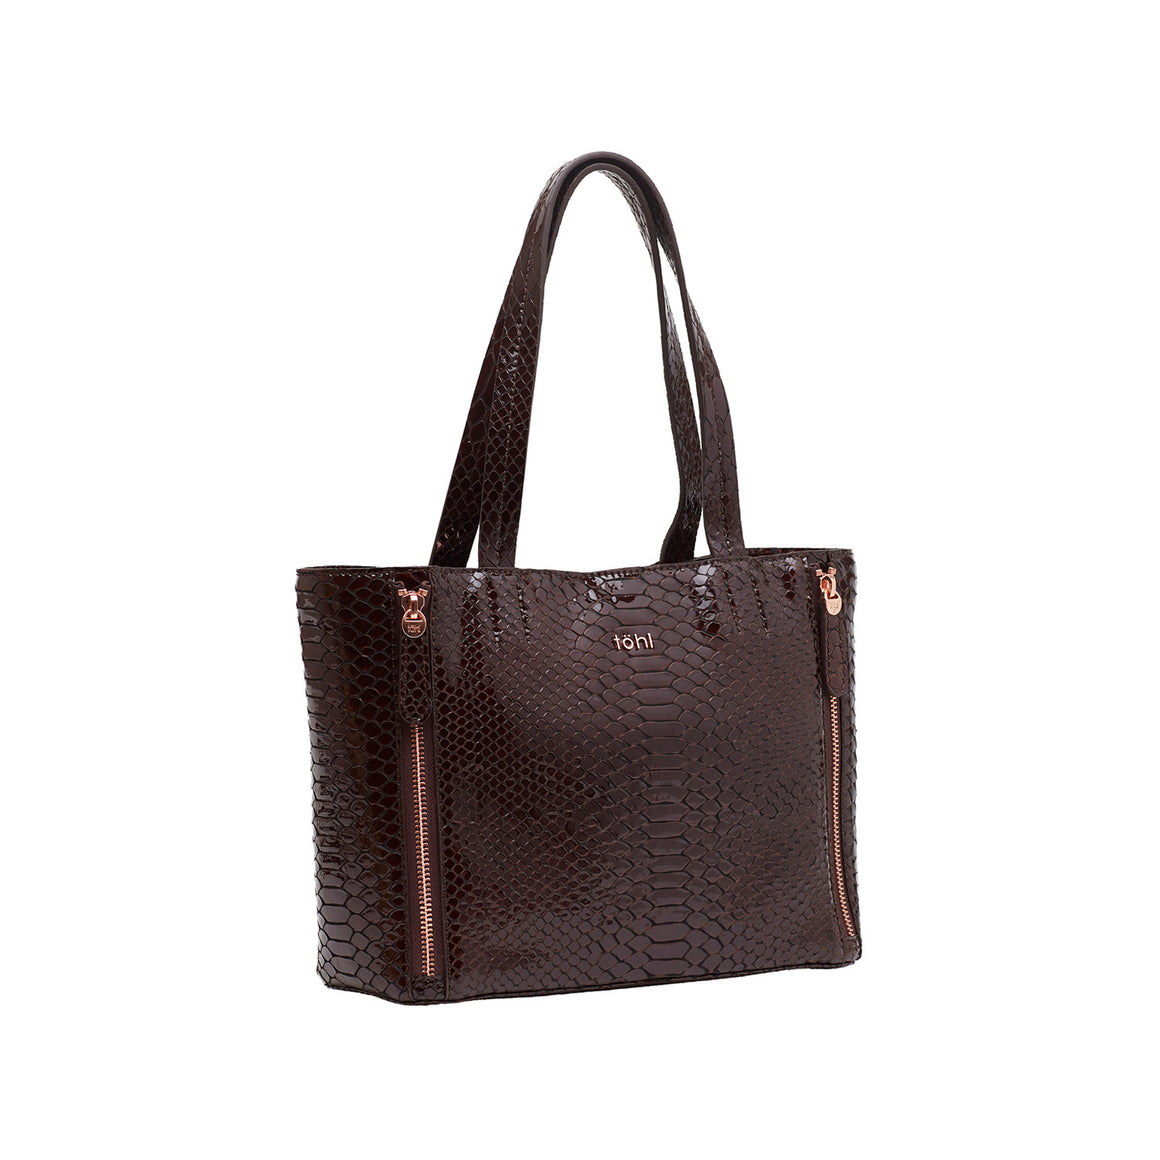 HH 0004 - TOHL VARICK WOMEN'S TOTE BAG - DEVIL ANGELINA